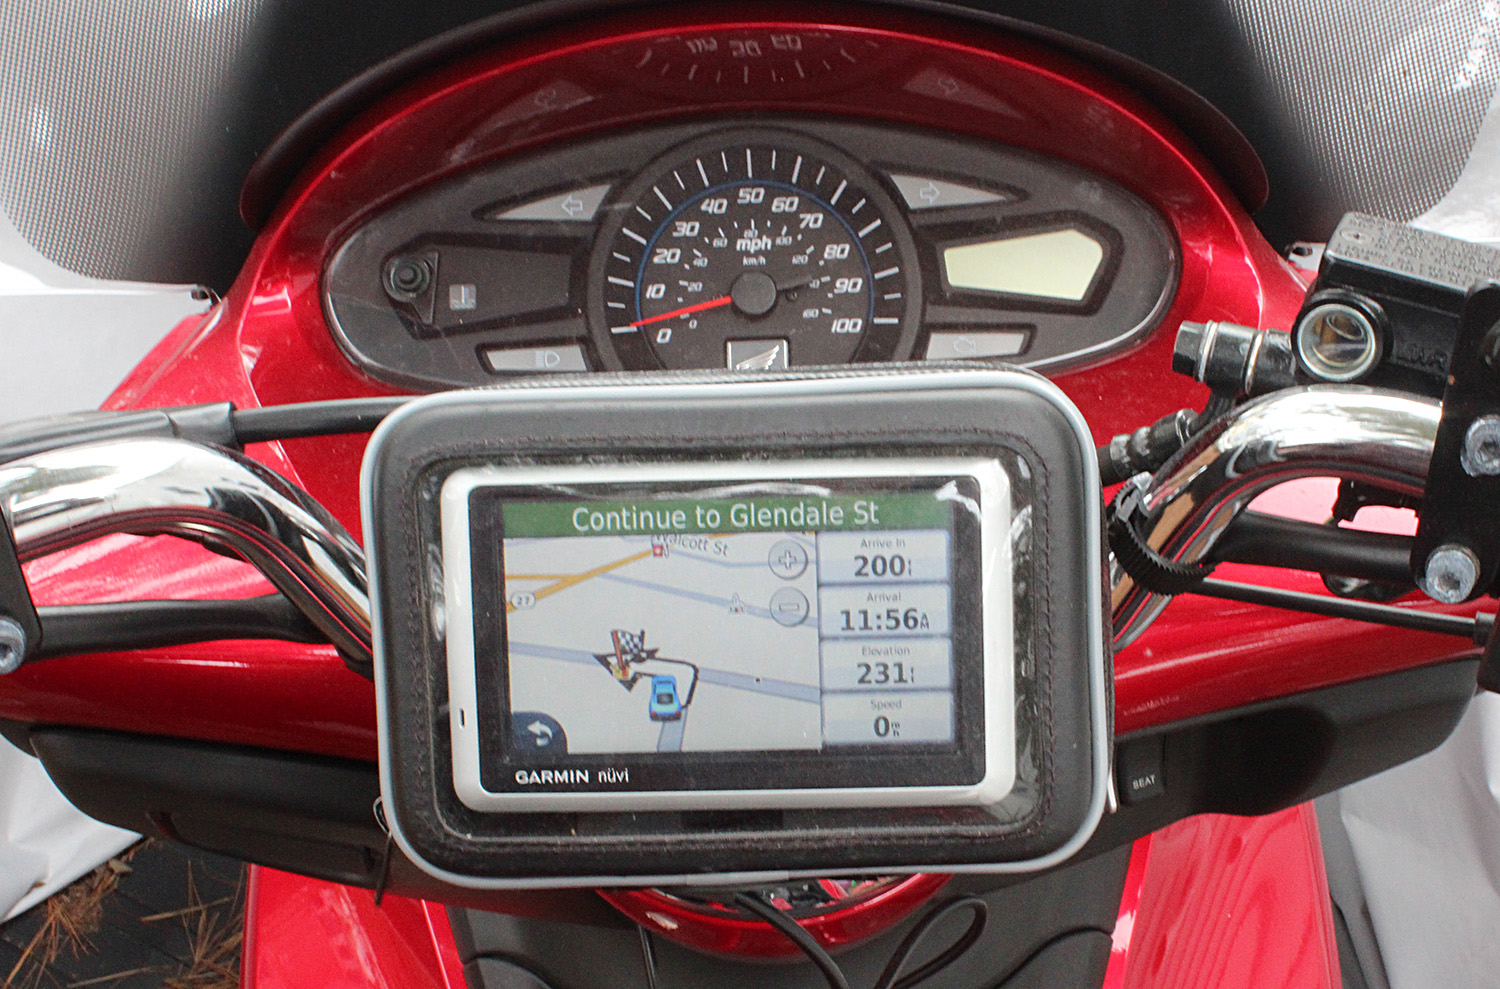 gps on scooter.jpg